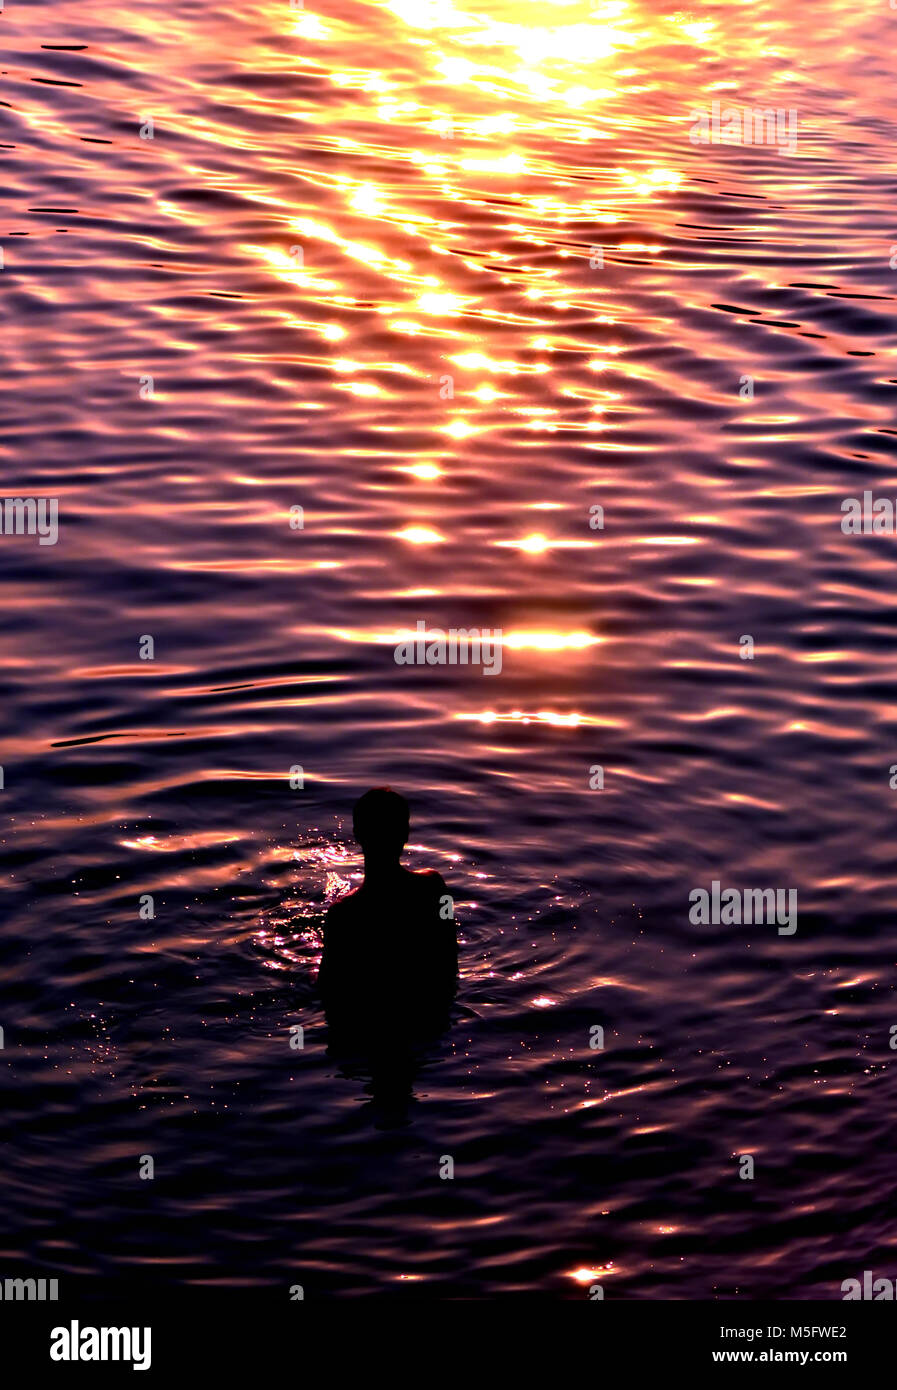 Summer activity, a blur abstract silhouette photo of a man enjoy his activity alone in a water during a hot weather - Stock Image